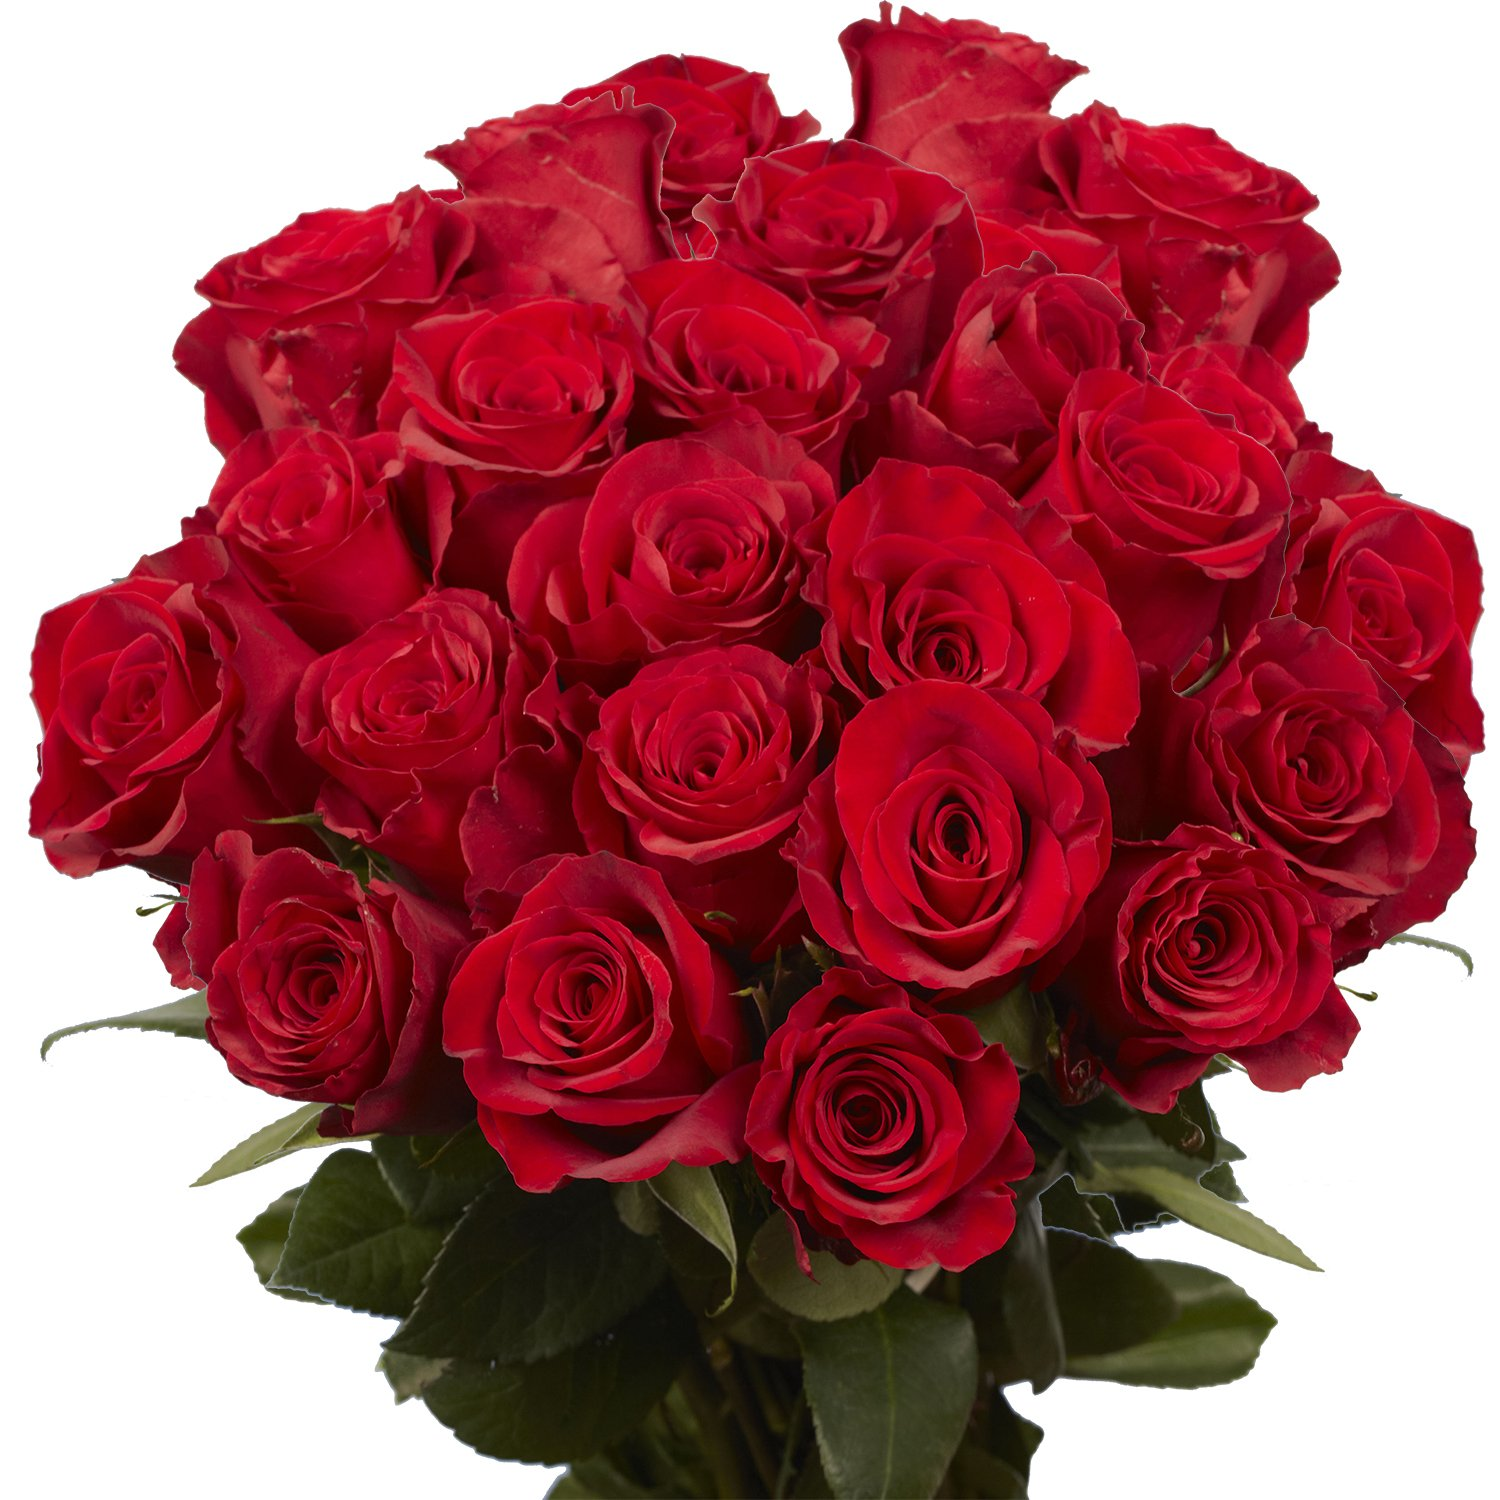 GlobalRose Red Roses- Express Flower Delivery- 50 Fresh Cut Stems by GlobalRose